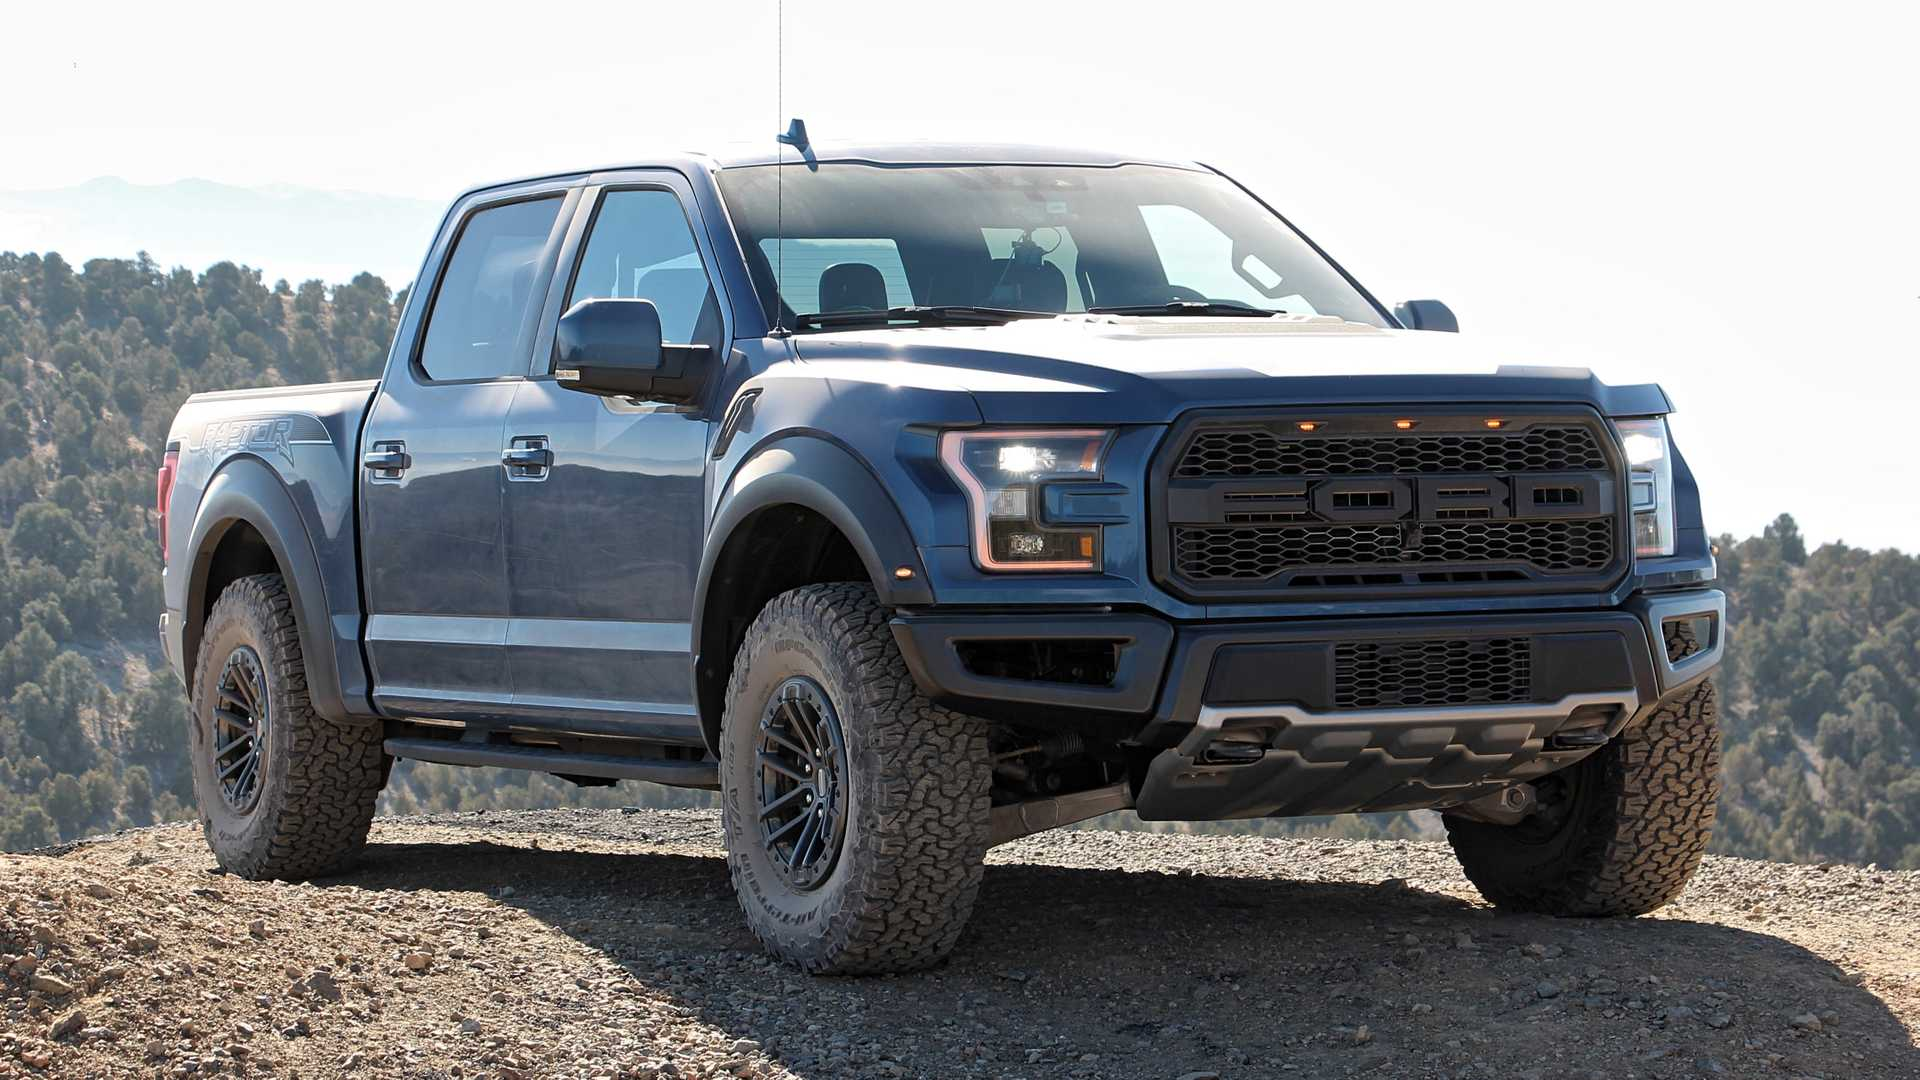 72 All New 2019 Ford F150 Svt Raptor Performance